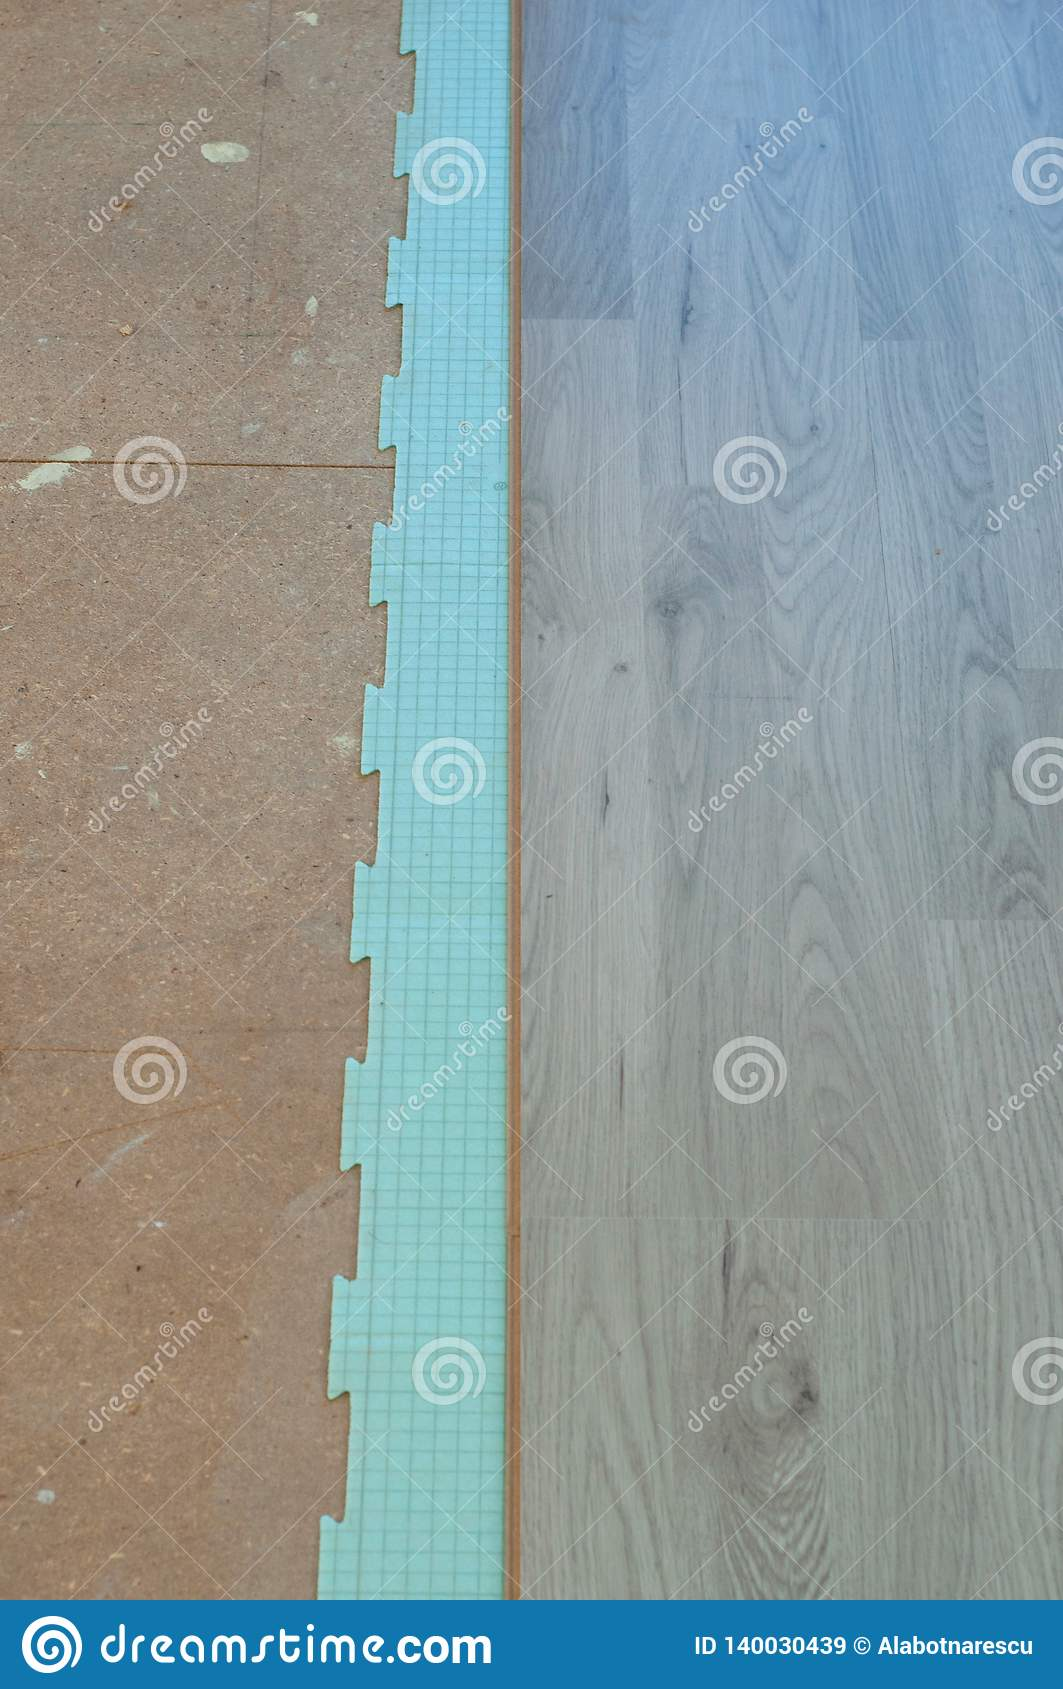 Istalation of new laminate flooring, using a isolating sound material